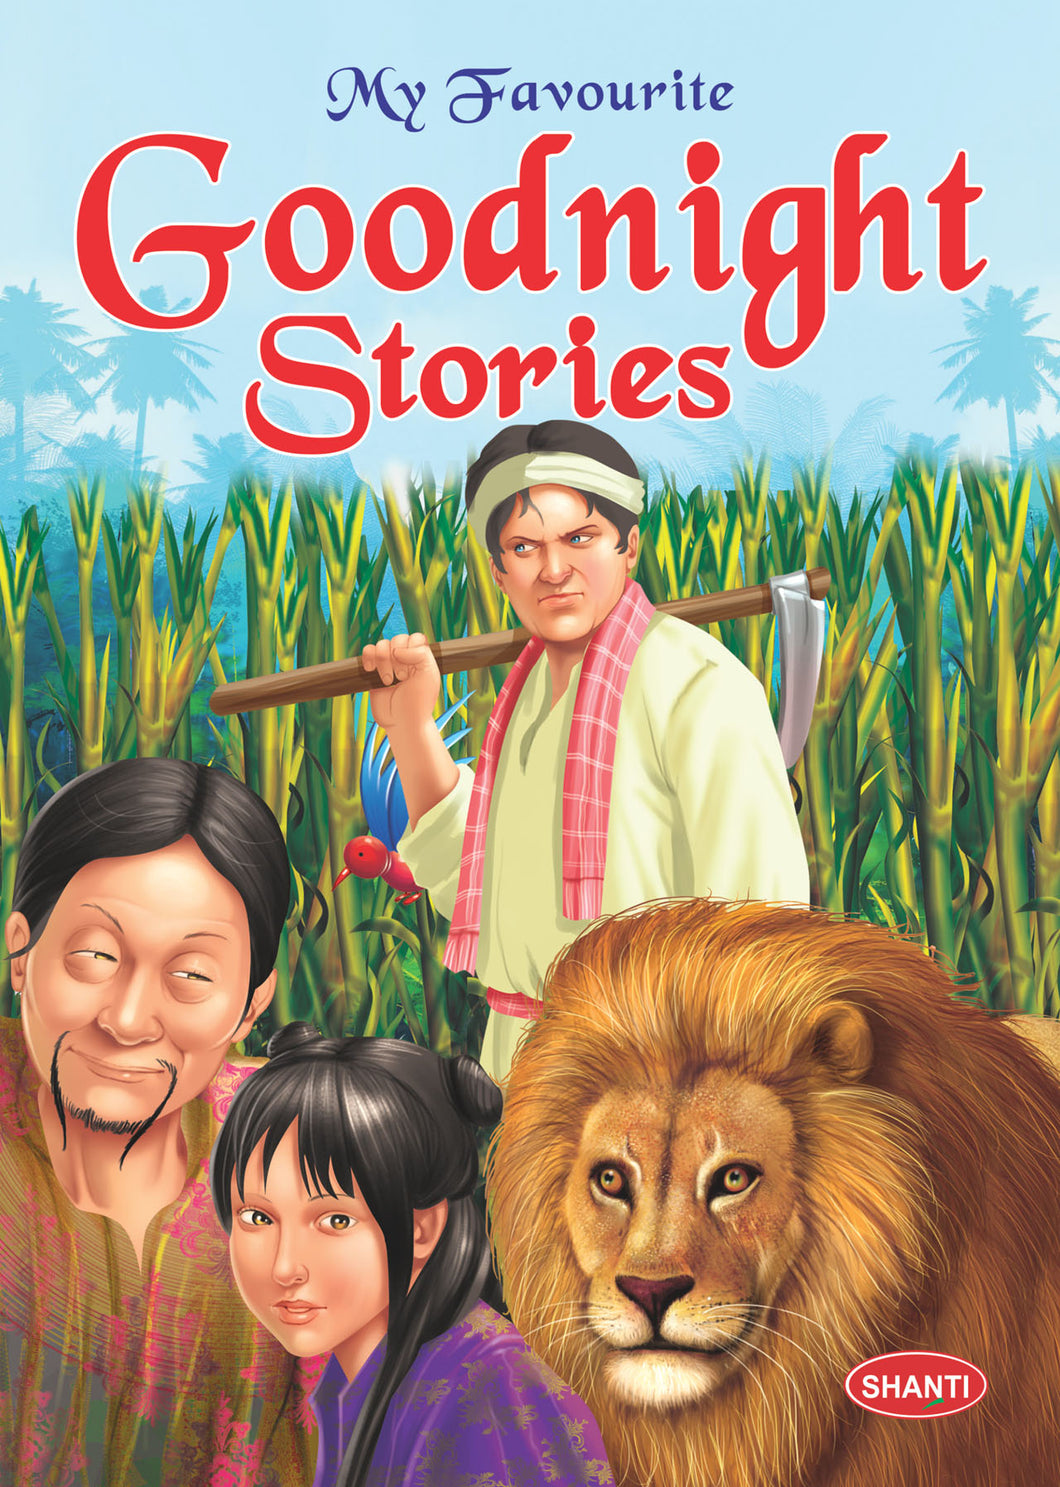 Story Book for Kids-My Favorite Goodnight Stories (English)-1